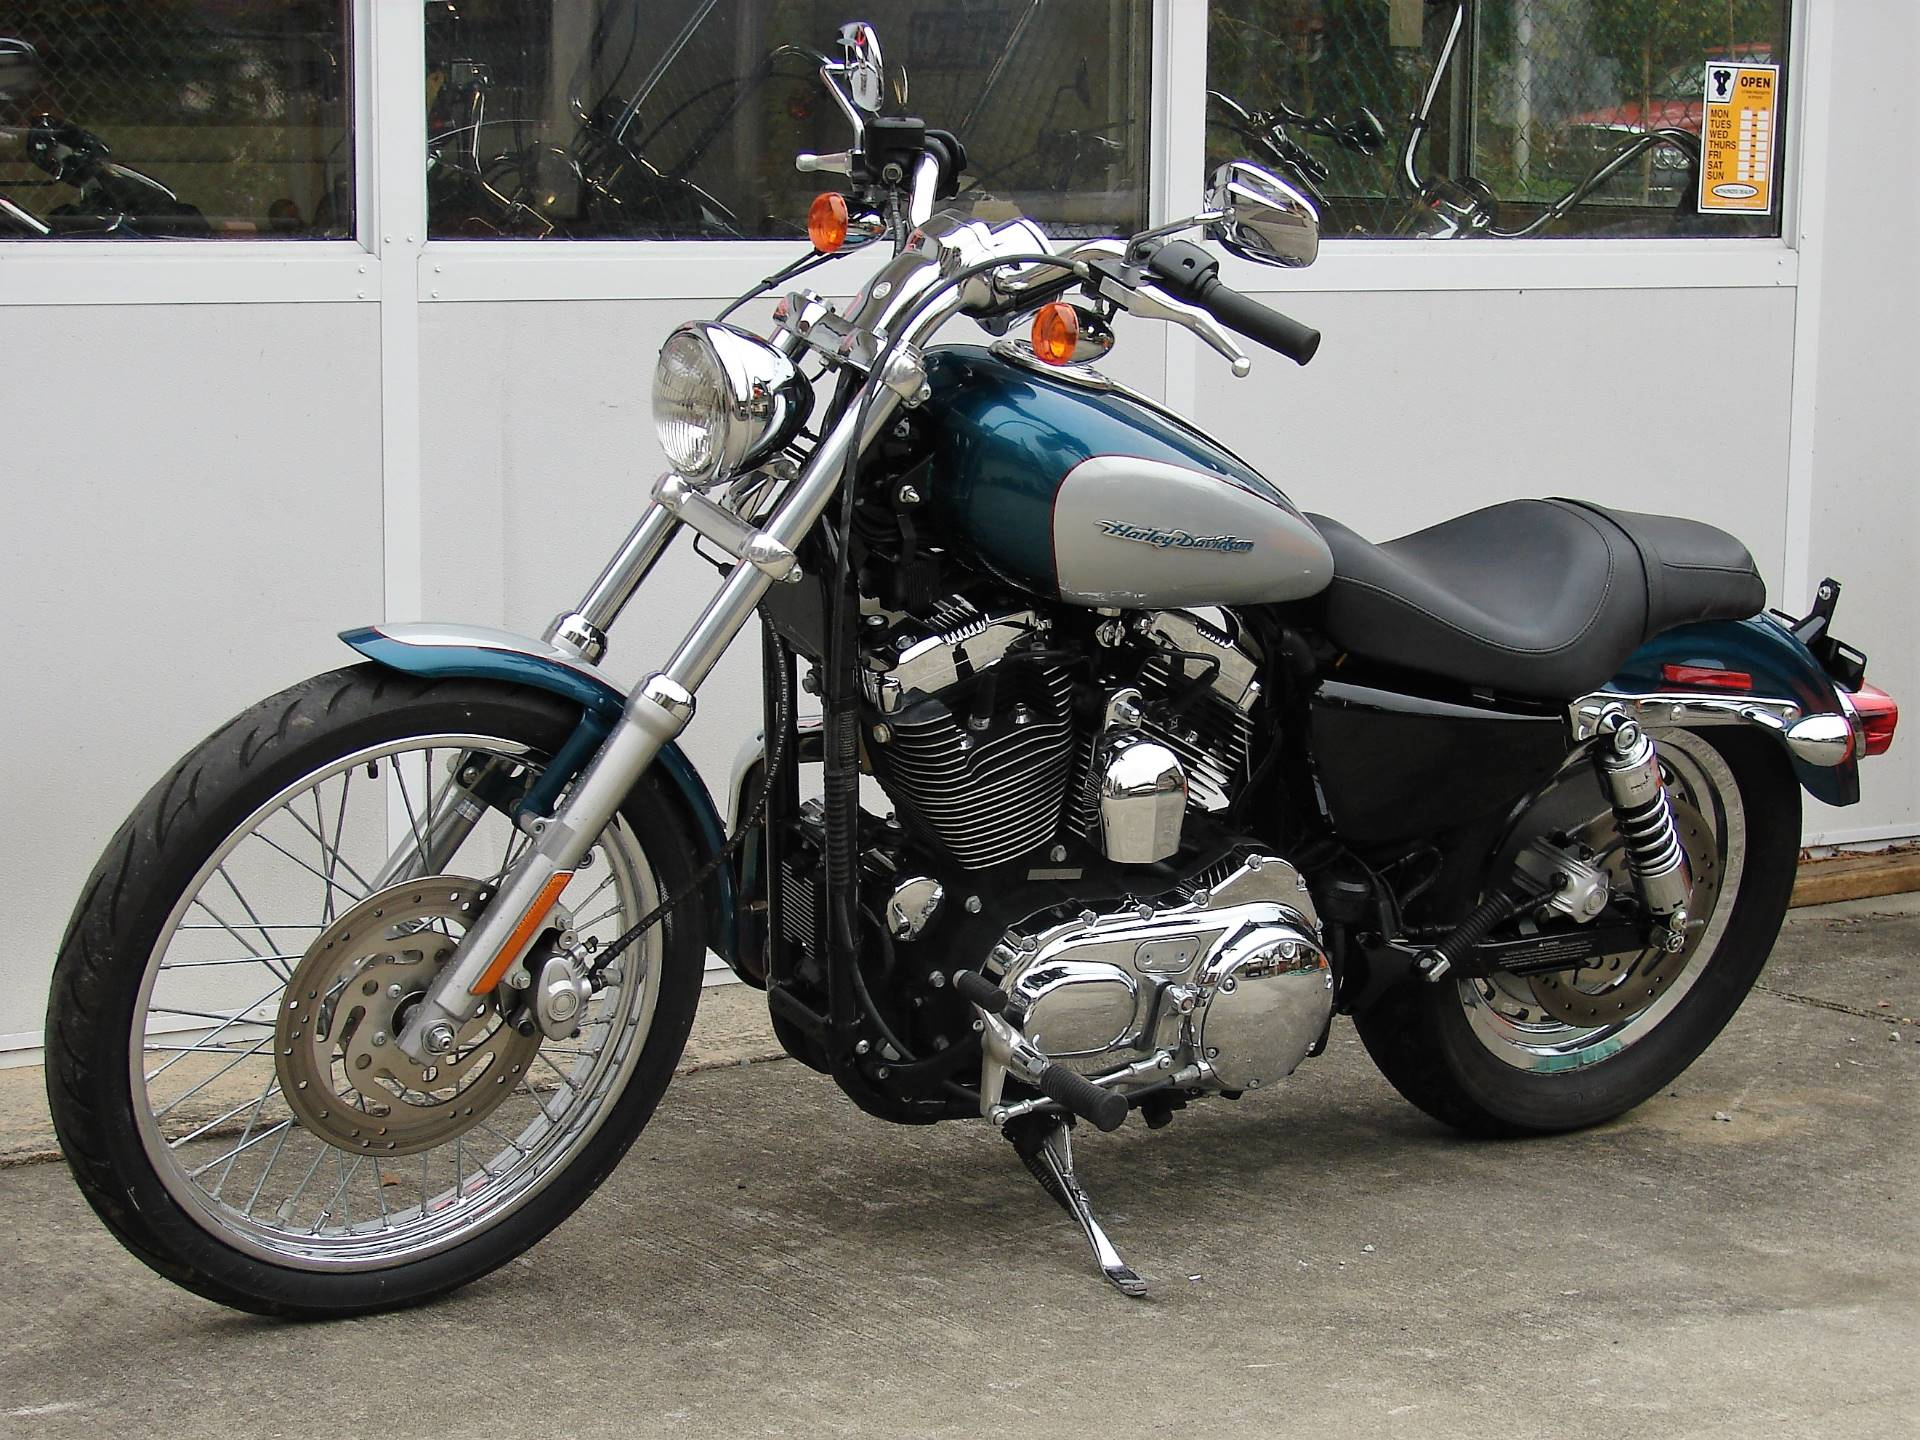 2004 Harley-Davidson Sportster XL 1200 Custom in Williamstown, New Jersey - Photo 10